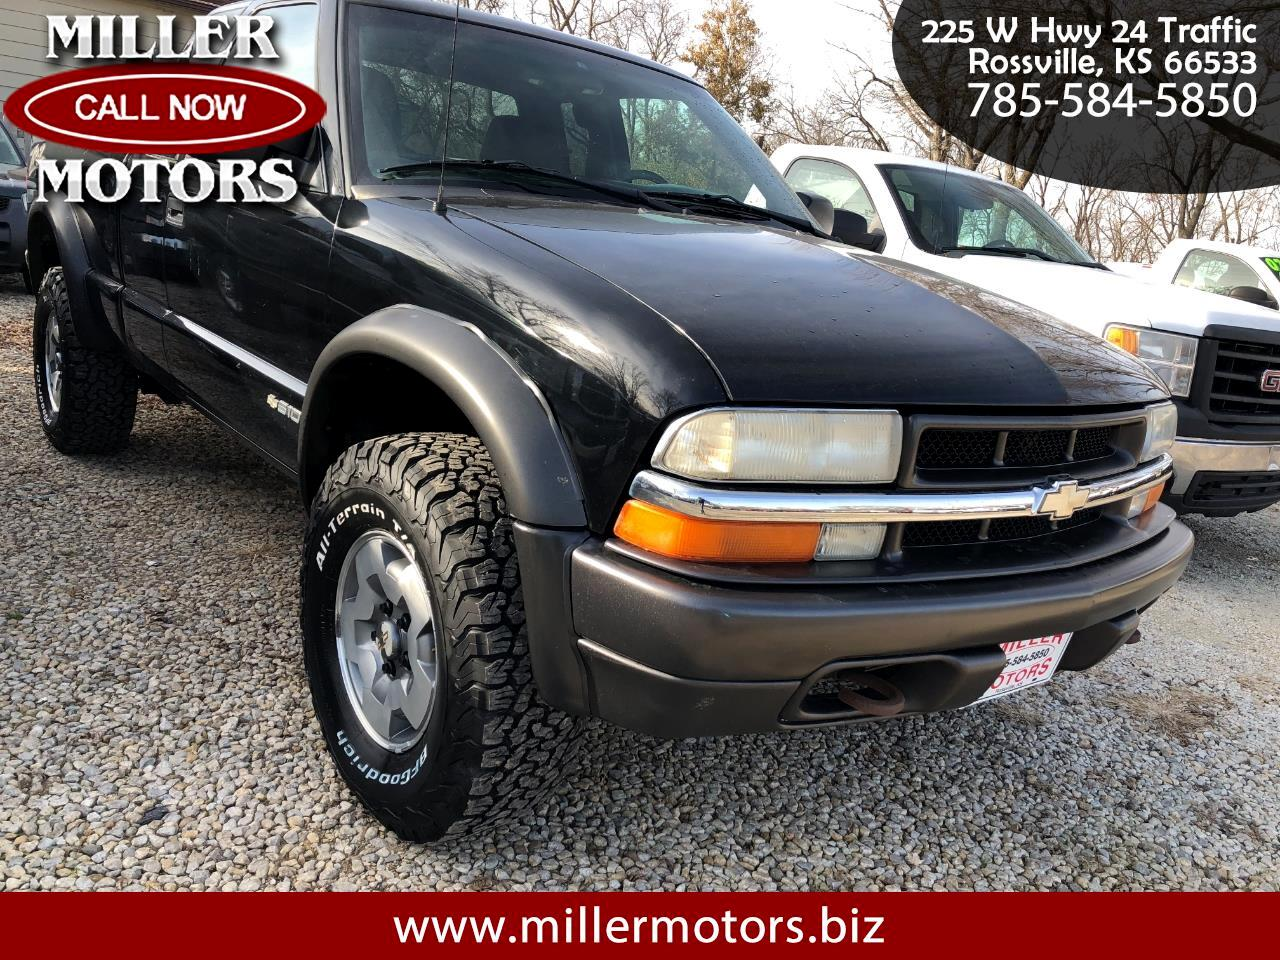 2003 Chevrolet S-10 LS Ext. Cab Sportside 4WD